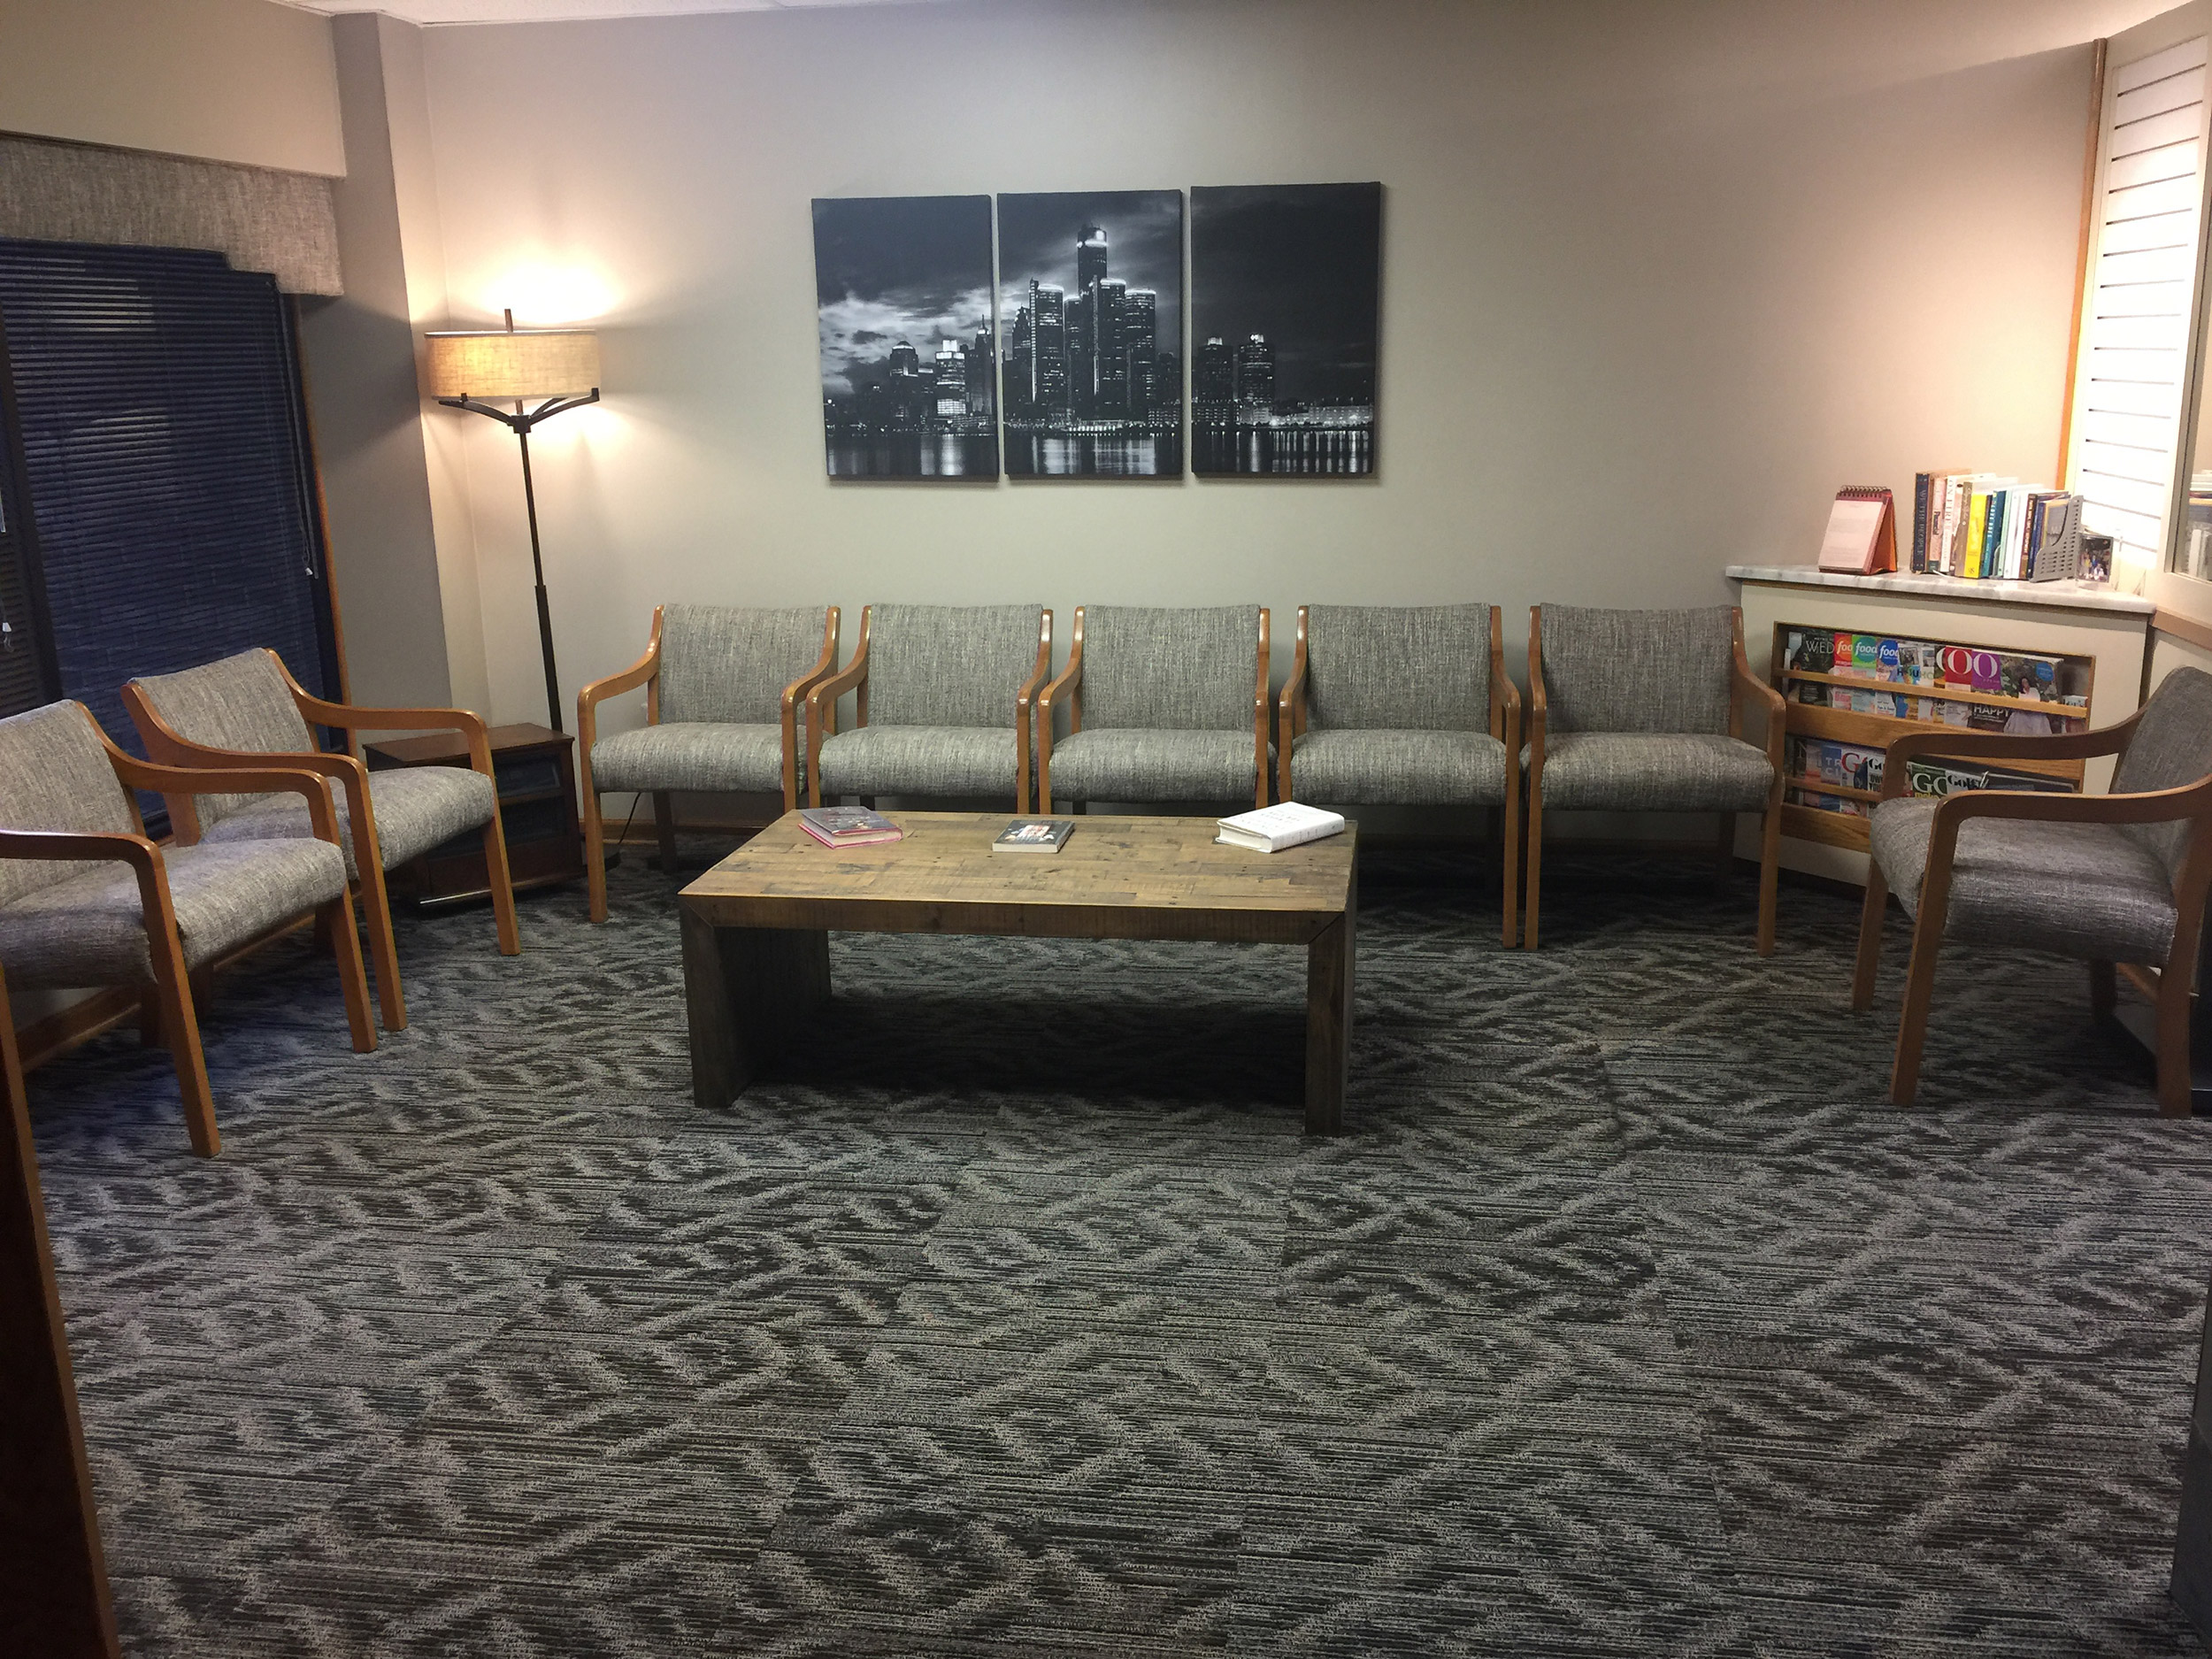 Eye Care Office Waiting Room In Shelby Twp Michigan